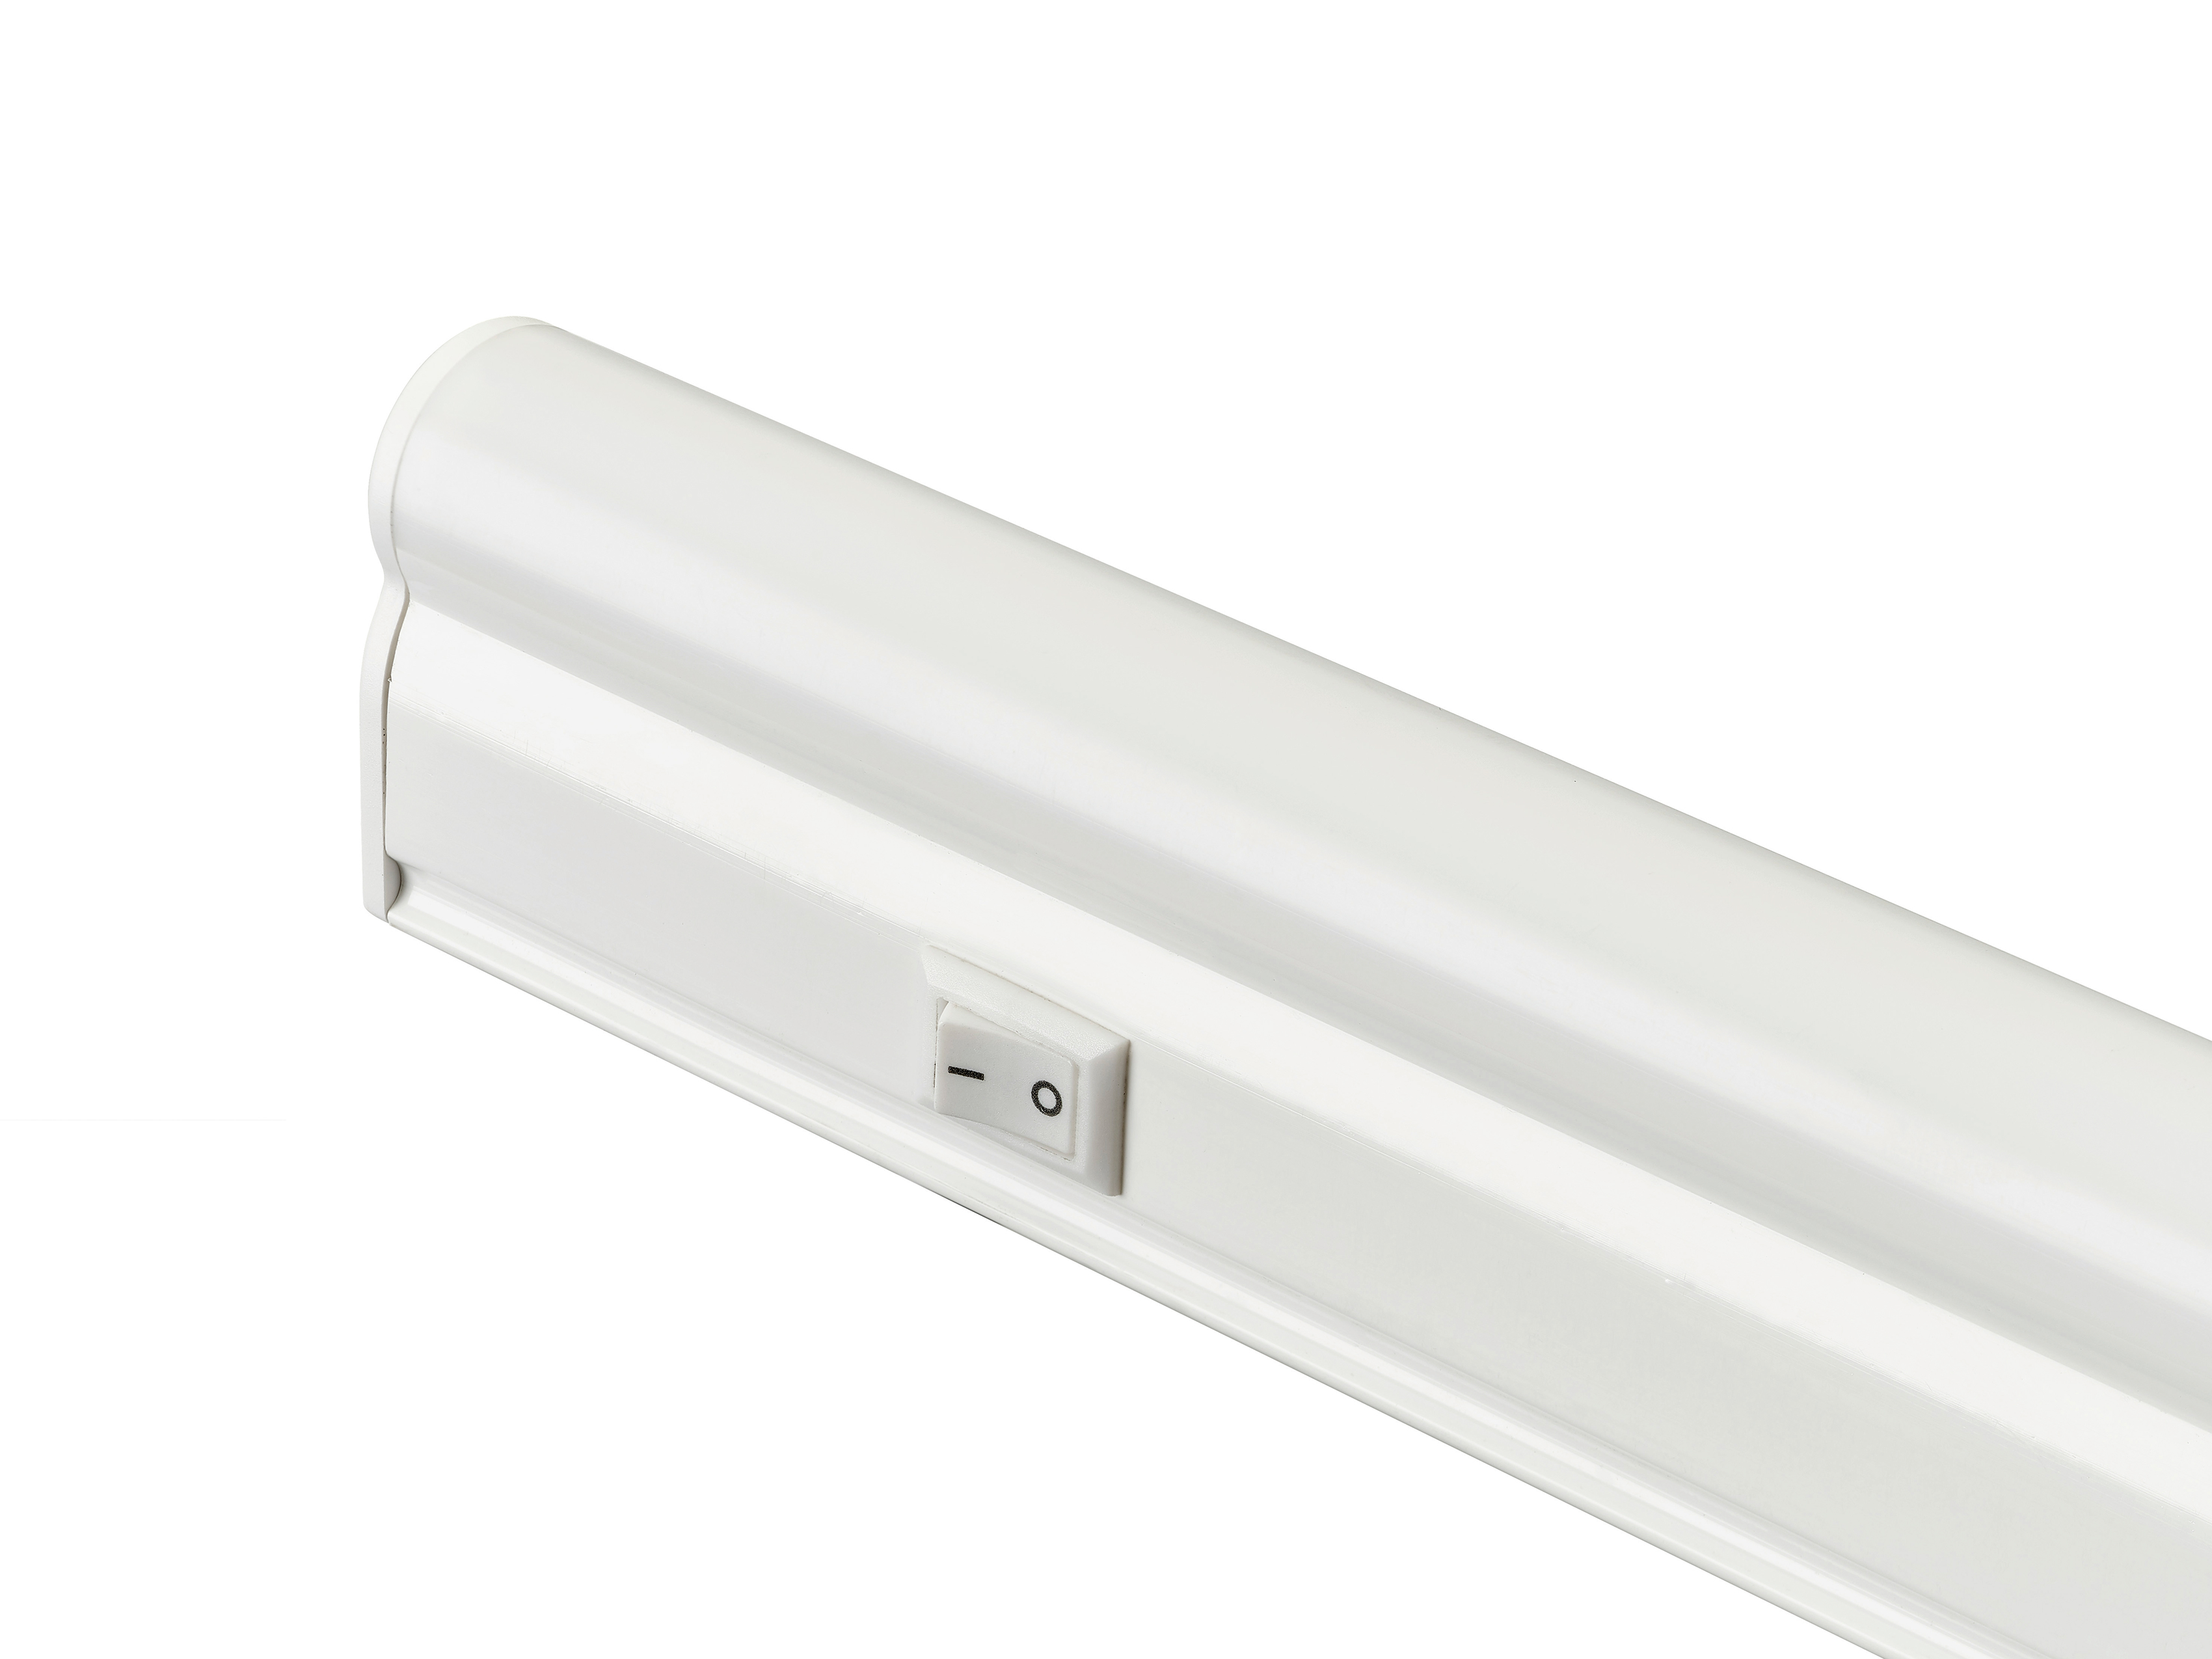 Sylvania PIPE LED under cabinet light 4W warm white 300mm length Thumbnail 2